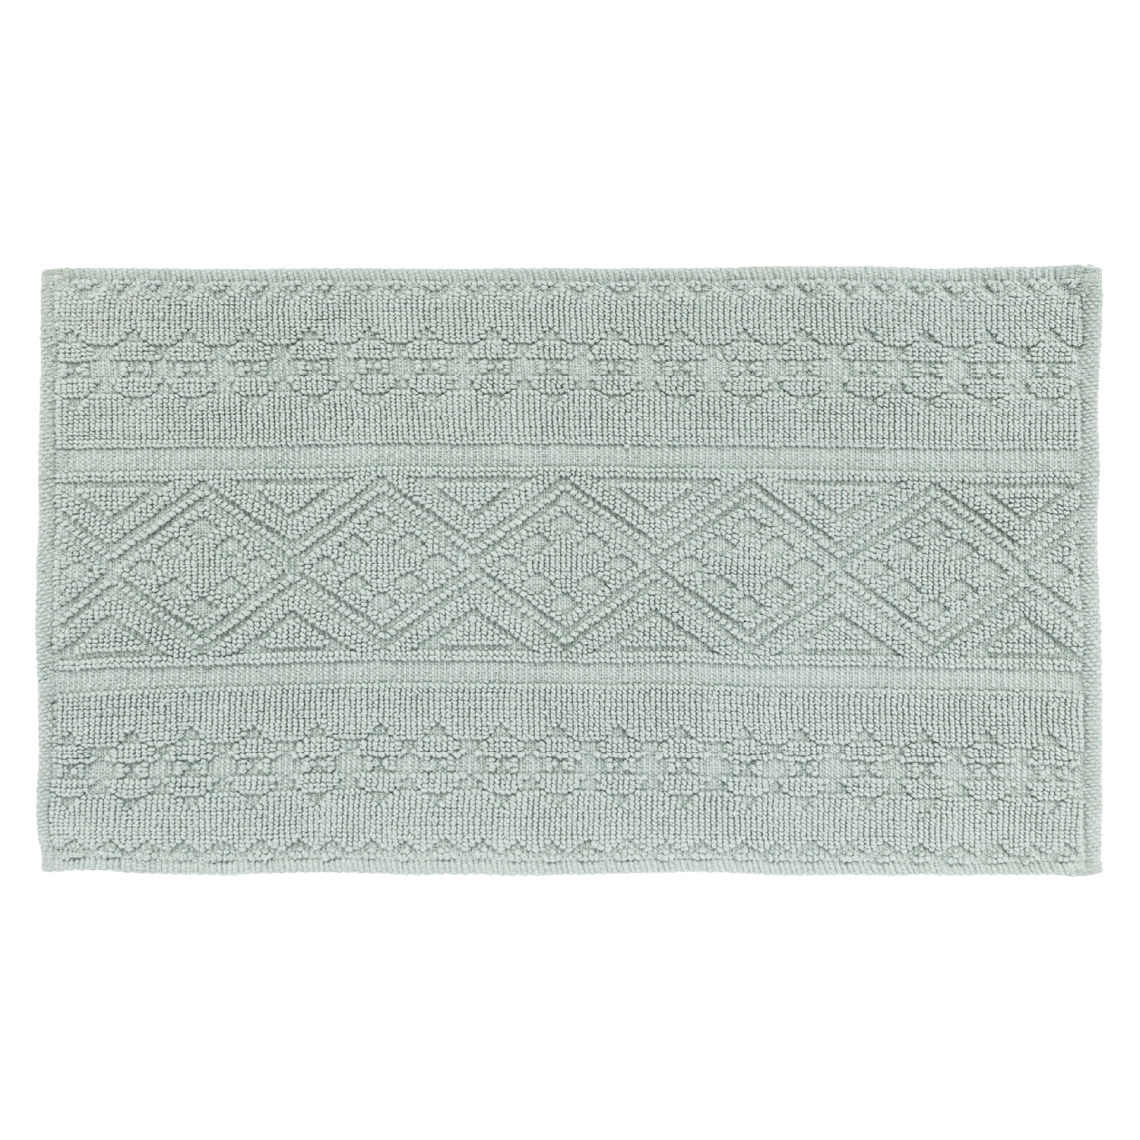 39137 Popular Category - Deep etches_Bath Mats.png